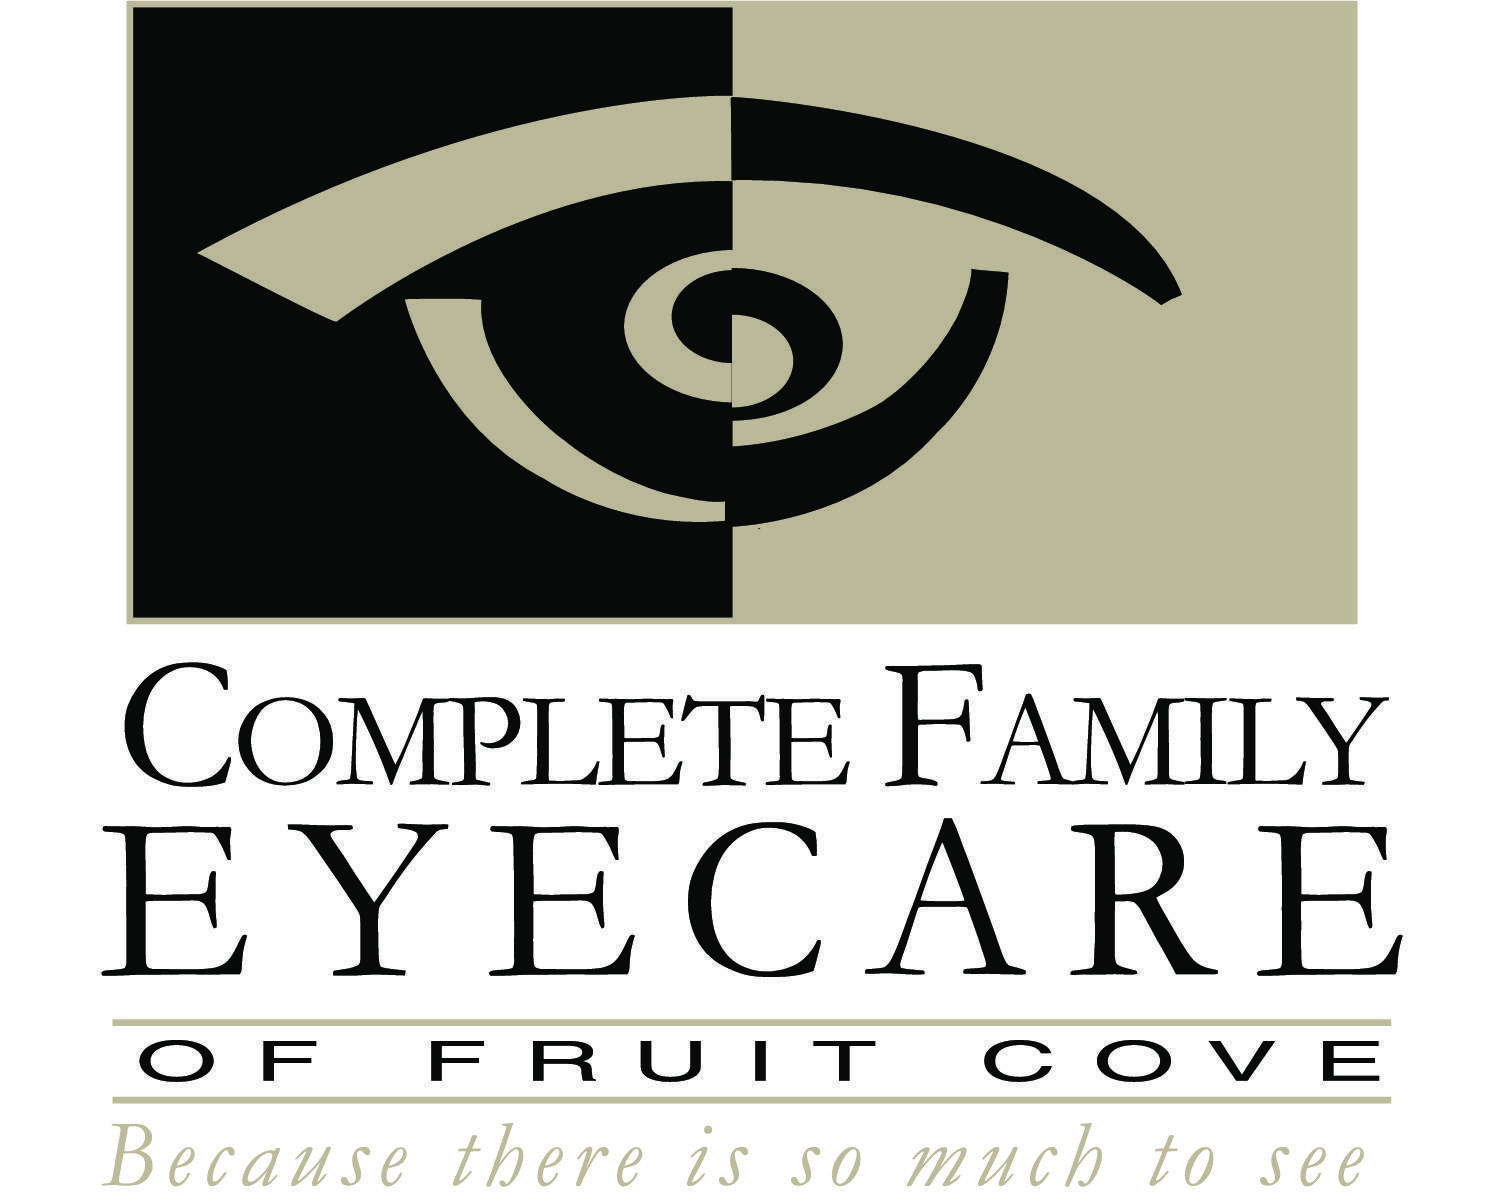 Welcome to complete family eye care of fruit cove complete family complete family eye care of fruit cove geenschuldenfo Images